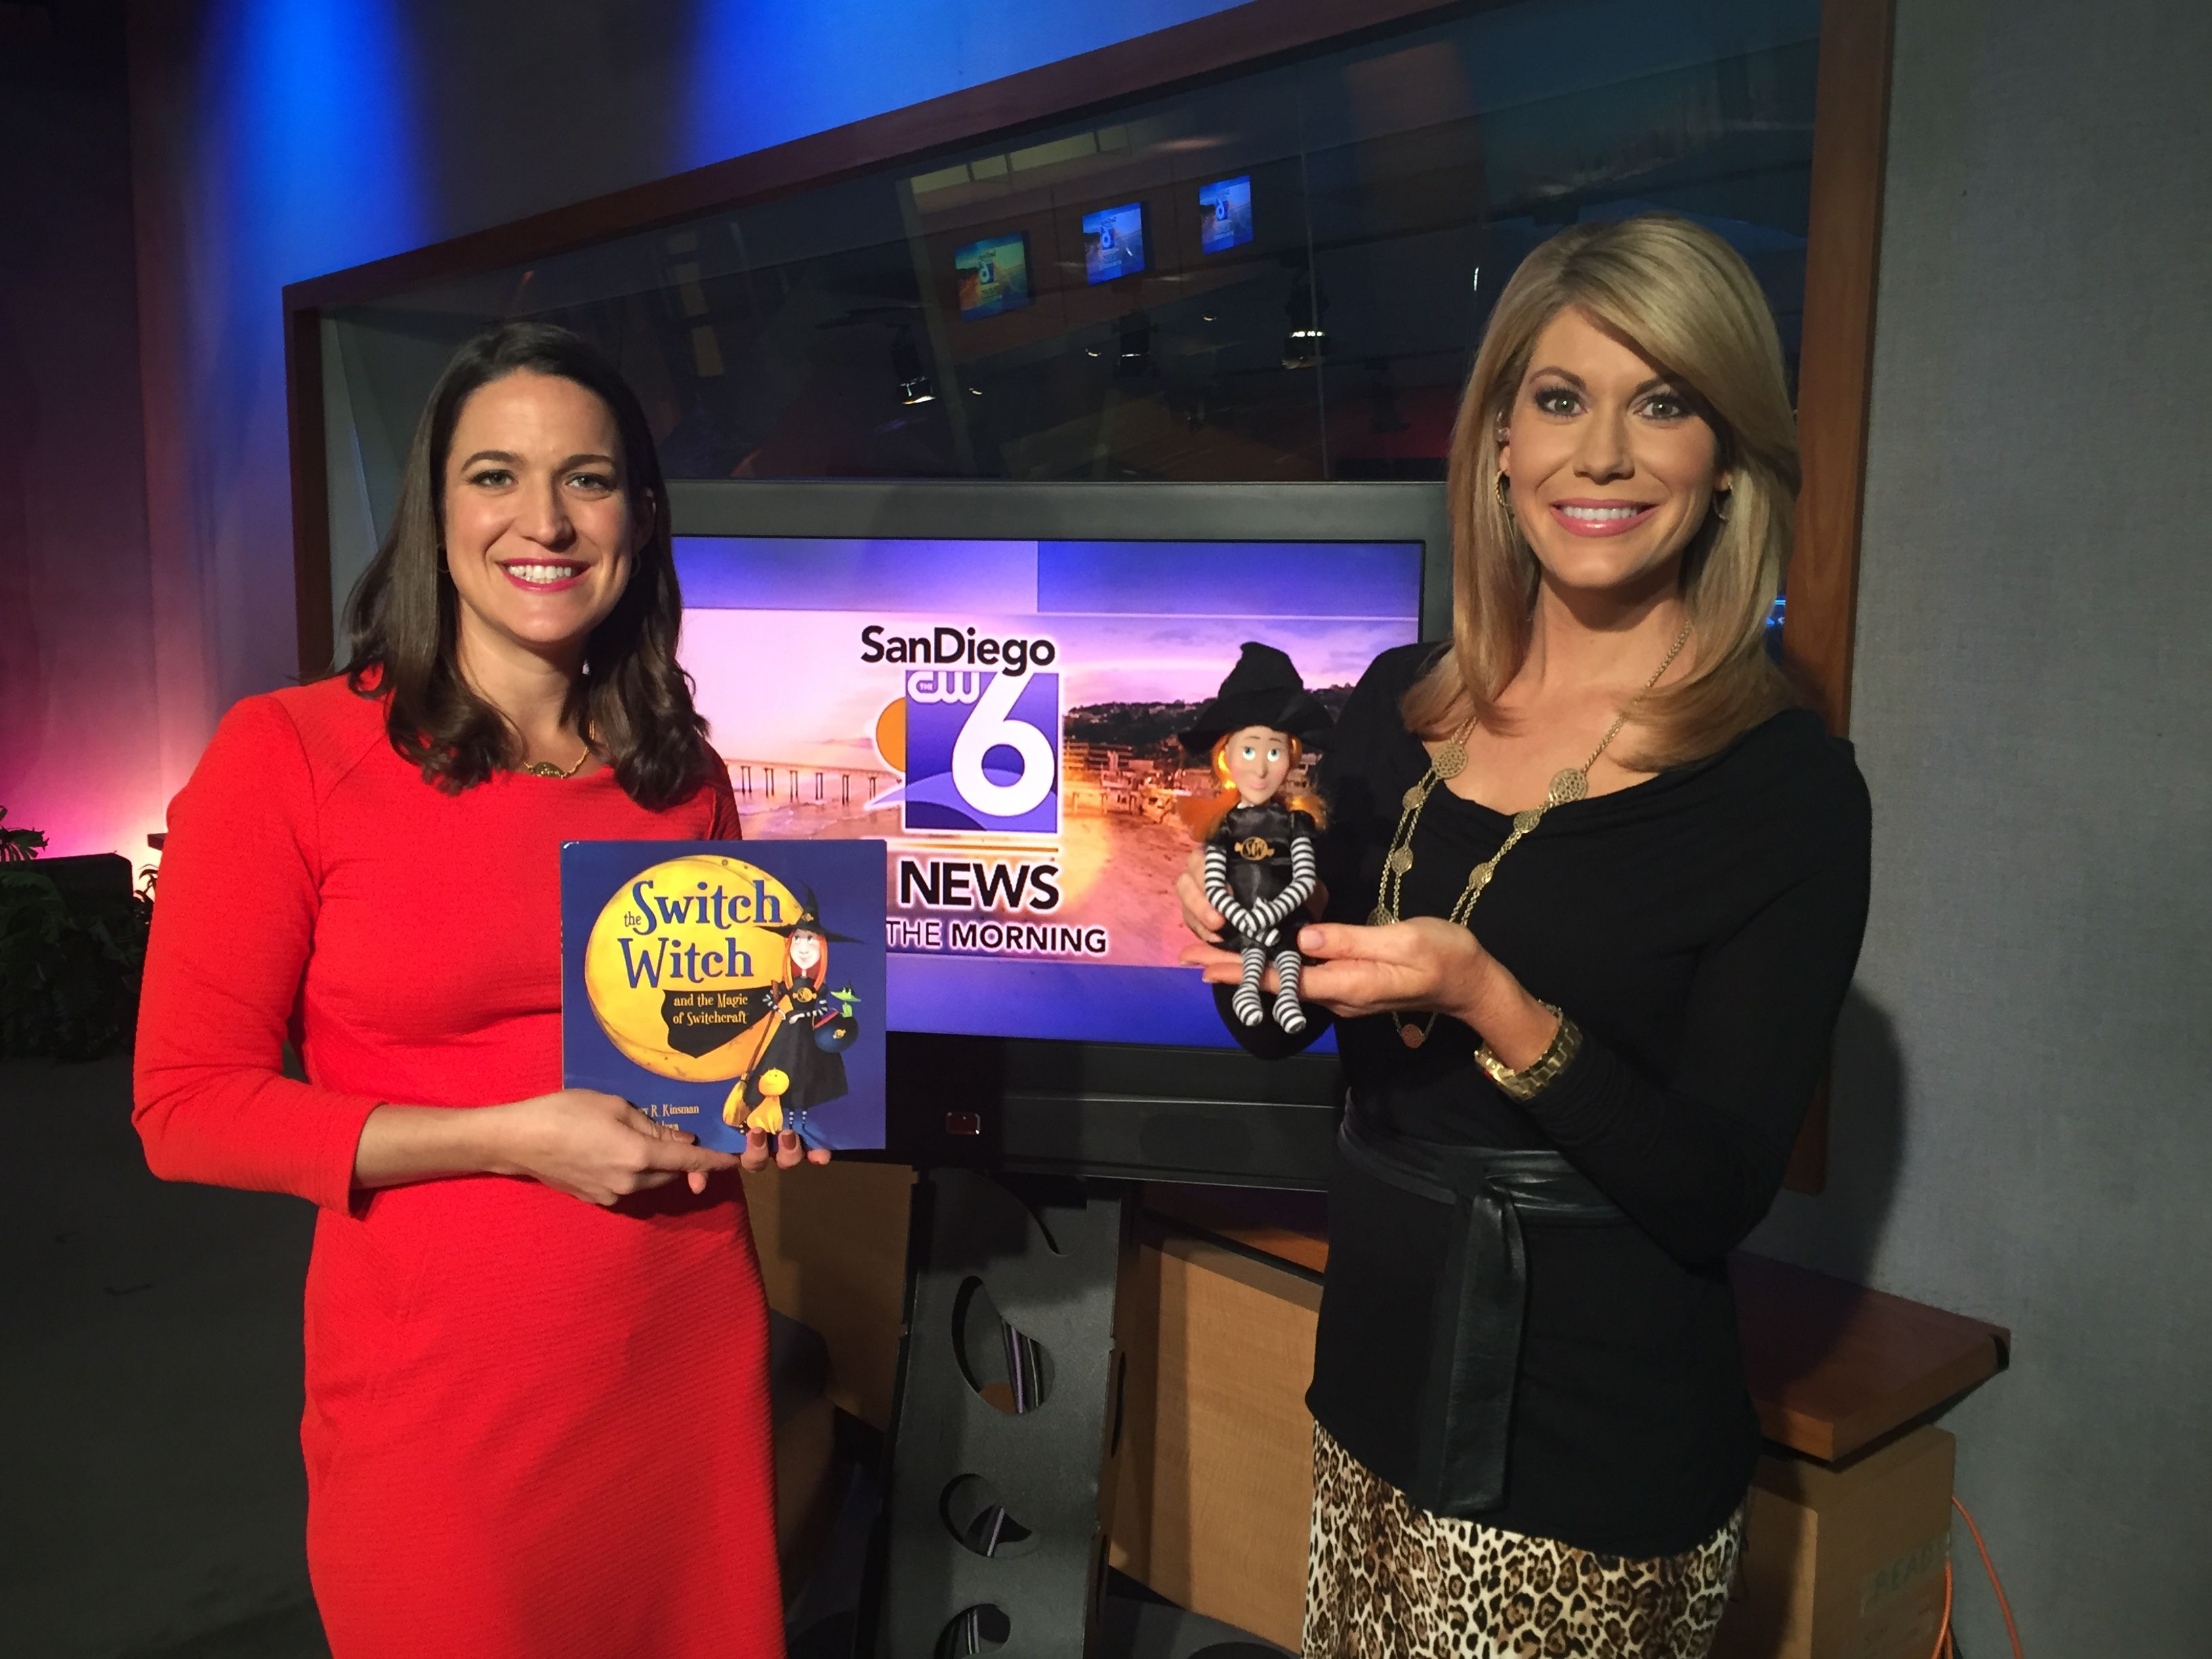 The Switch Witch is on the morning news in San Diego! Thanks to Heather Myers and everyone at Channel 6!